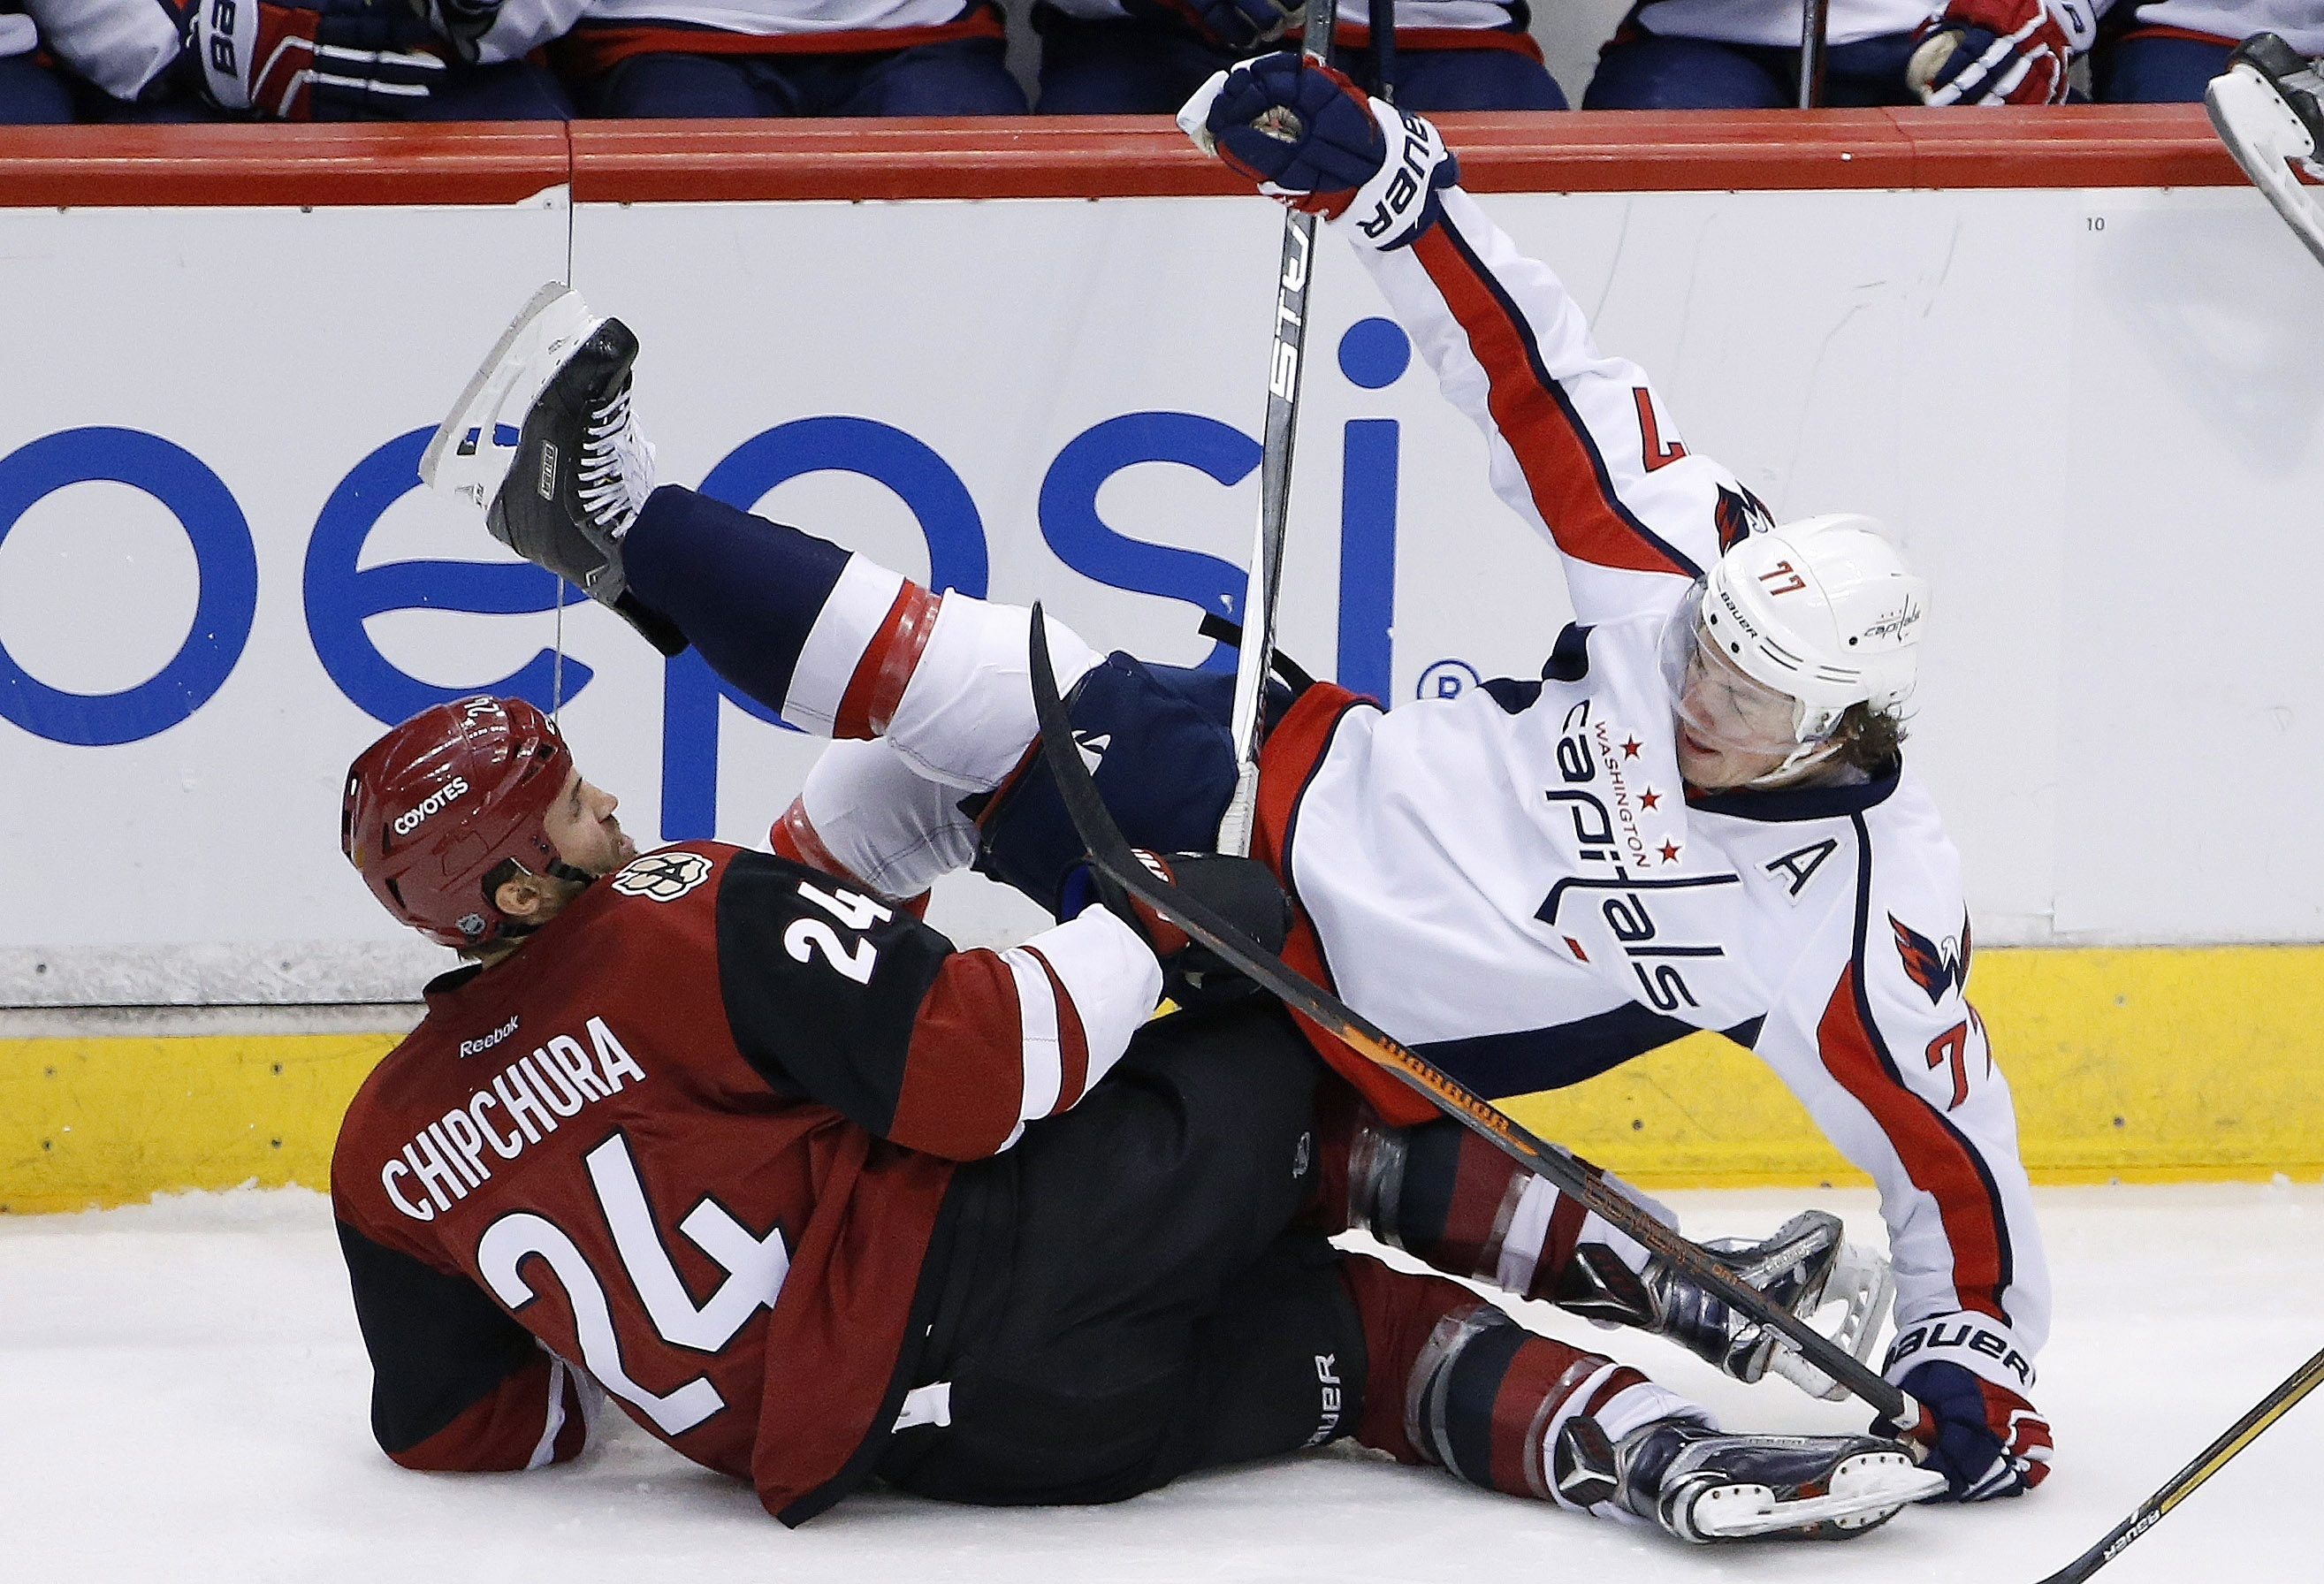 Washington Capitals' T.J. Oshie (77) falls over Arizona Coyotes' Kyle Chipchura (24) during the third period of an NHL hockey game Saturday, April 2, 2016, in Glendale, Ariz. The Coyotes defeated the Capitals 3-0. (AP Photo/Ross D. Franklin)